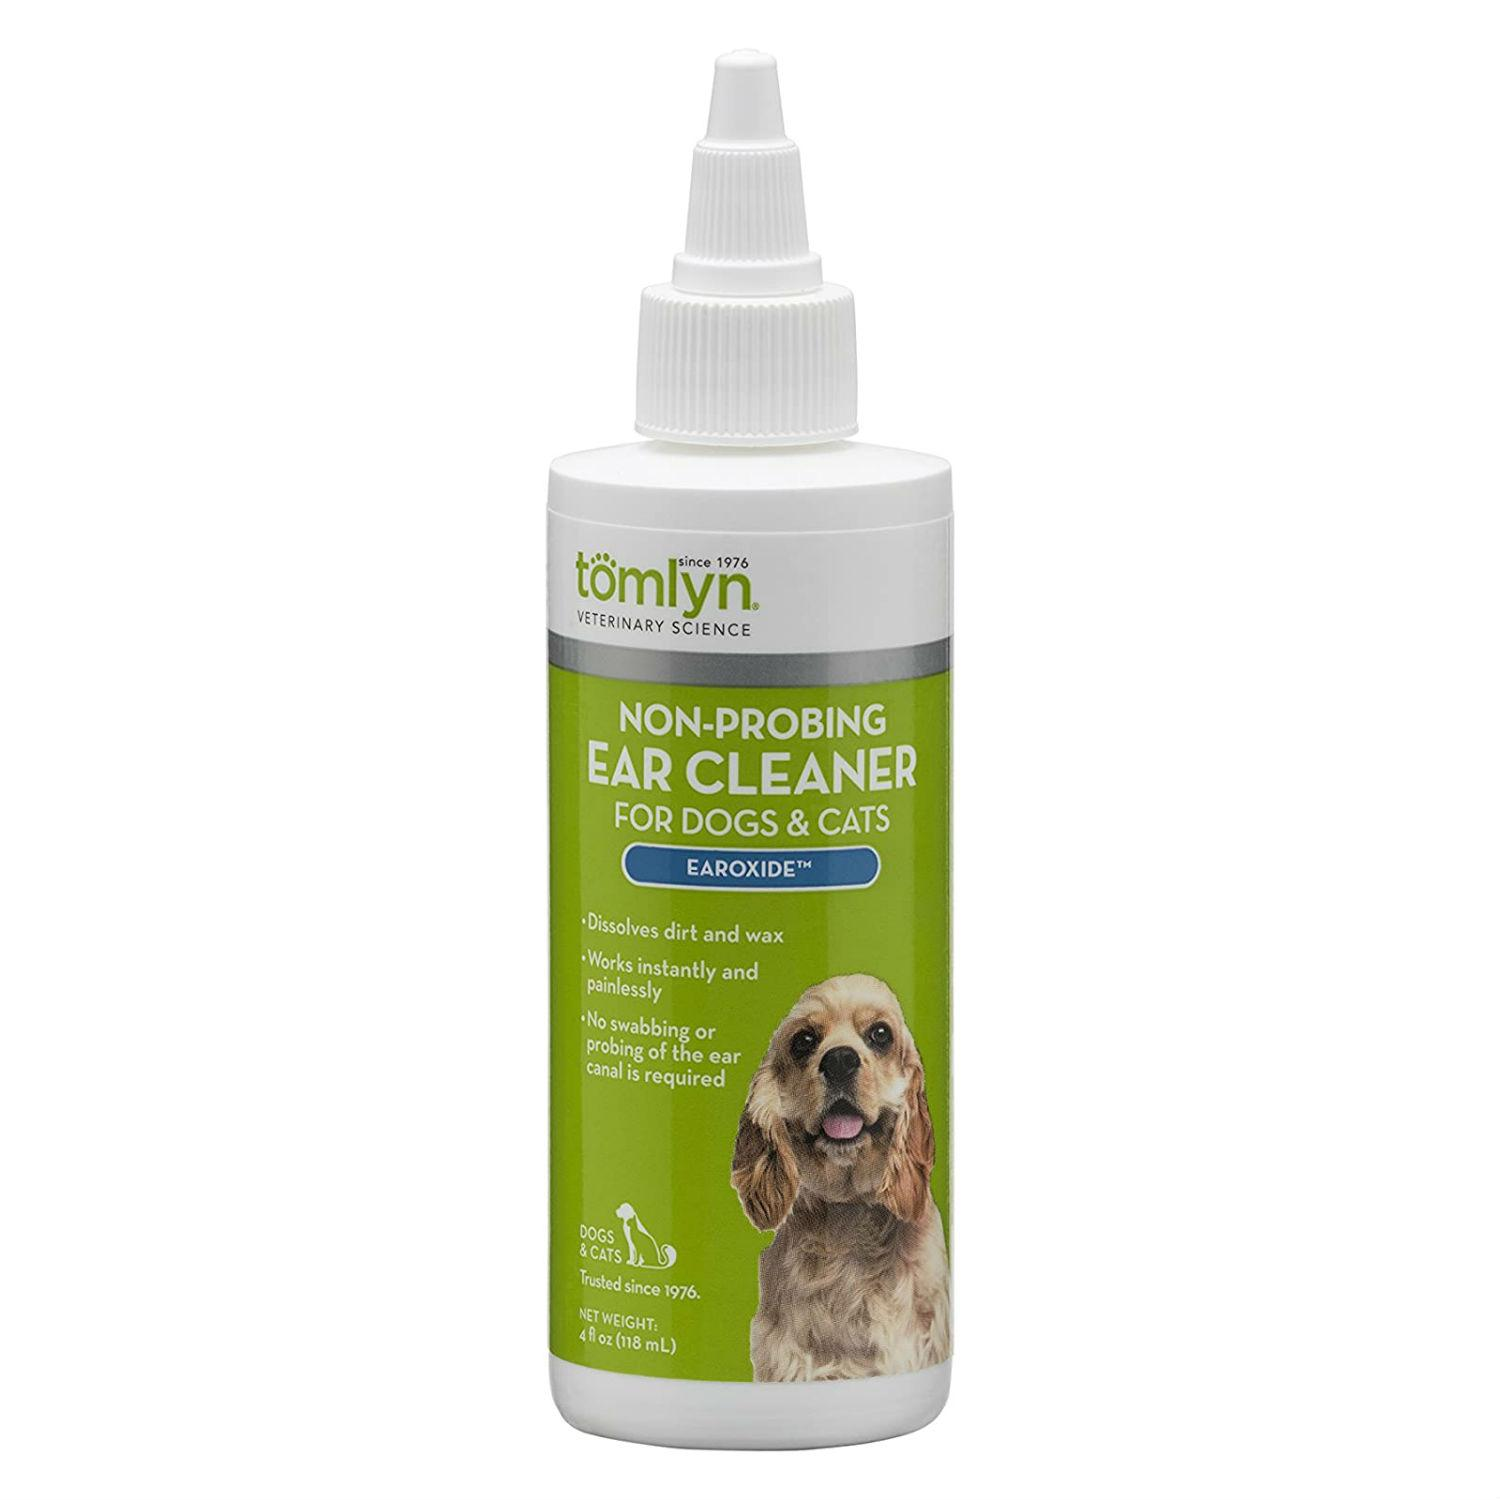 Tomlyn Earoxide Cleanser for Dogs and Cats